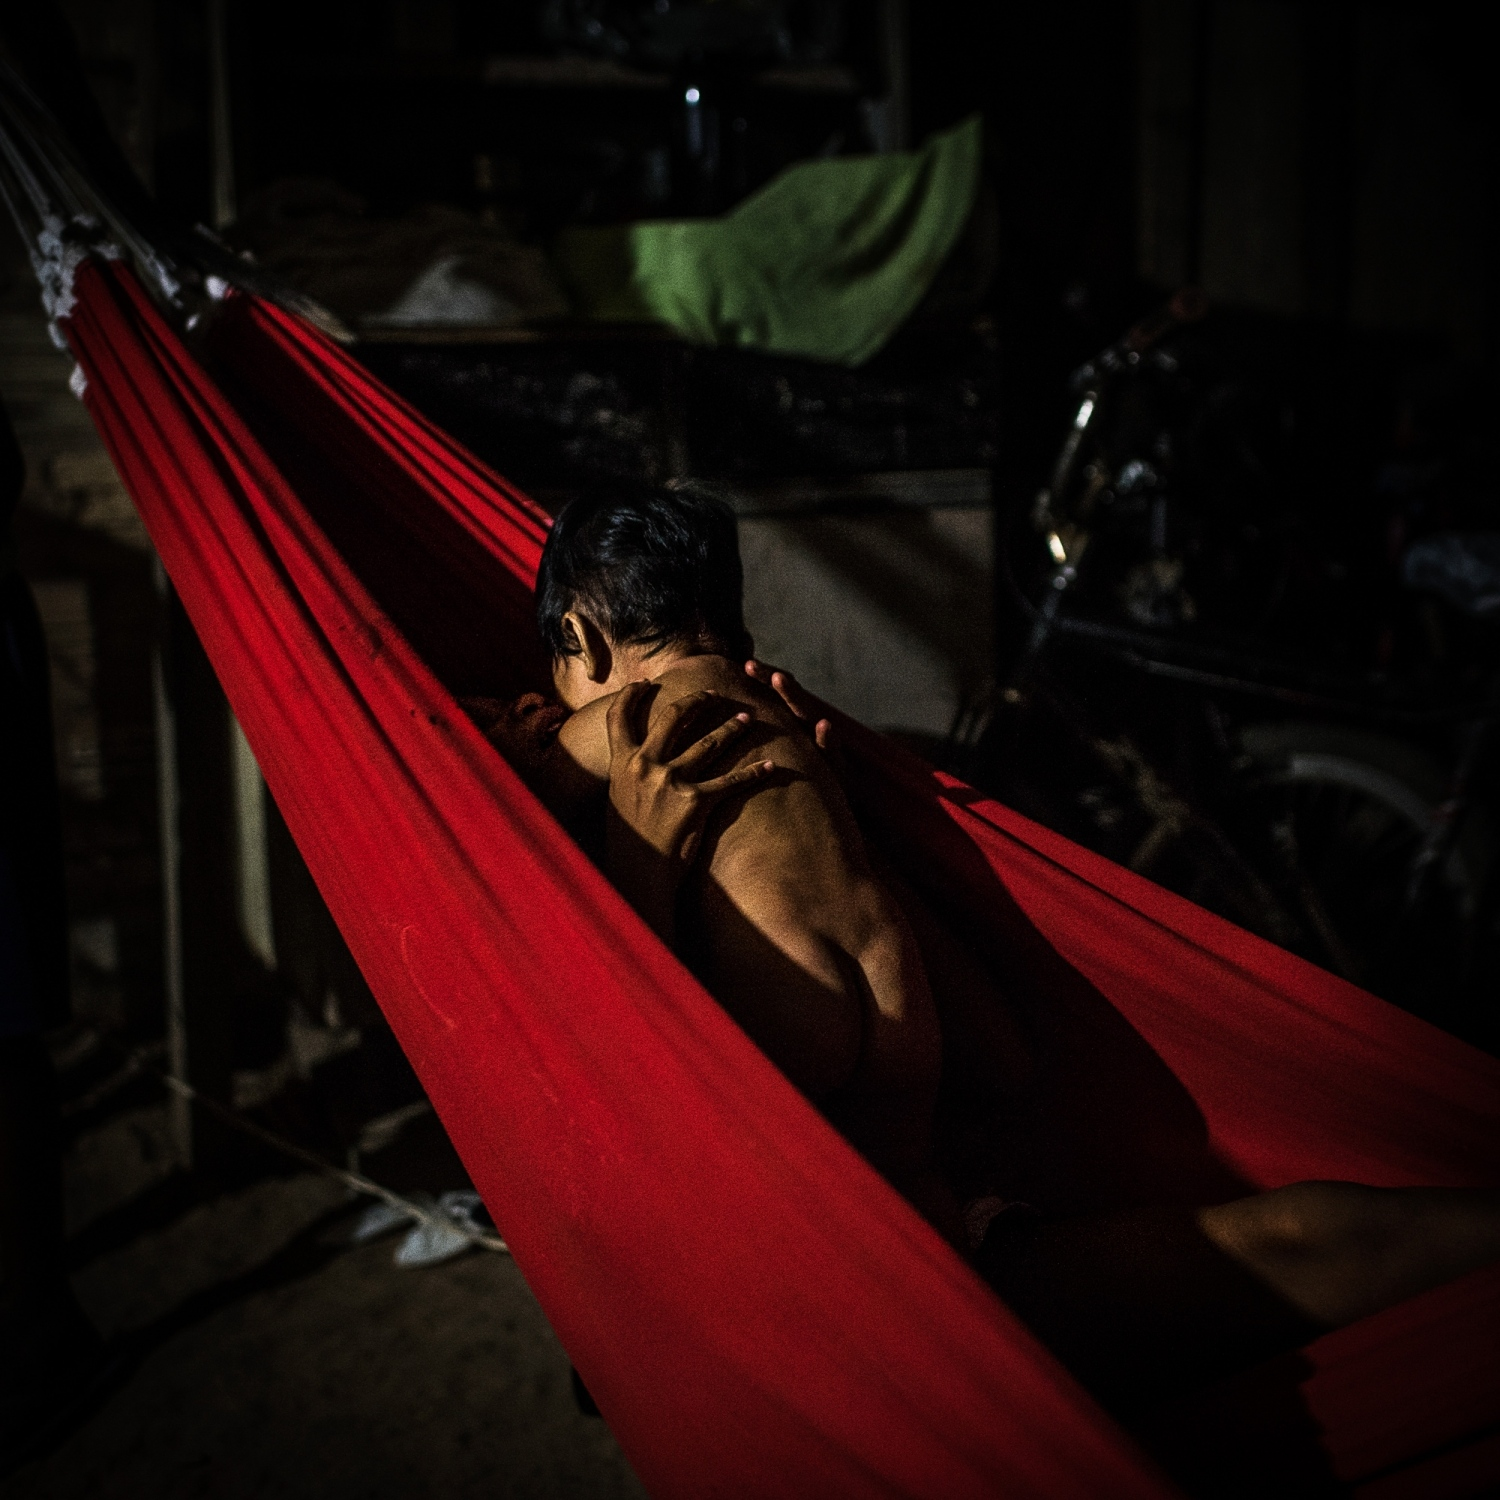 2016. A Munduruku girl holds her baby brother in a hammock in the village of Praia Do Mangue near the city of Itaituba in Para state, Brazil. The Munduruku are currently fighting against government plans to build 40 dams on the Tapajos River impacting traditional lands and destroying sacred sites.  /Aaron Vincent Elkaim